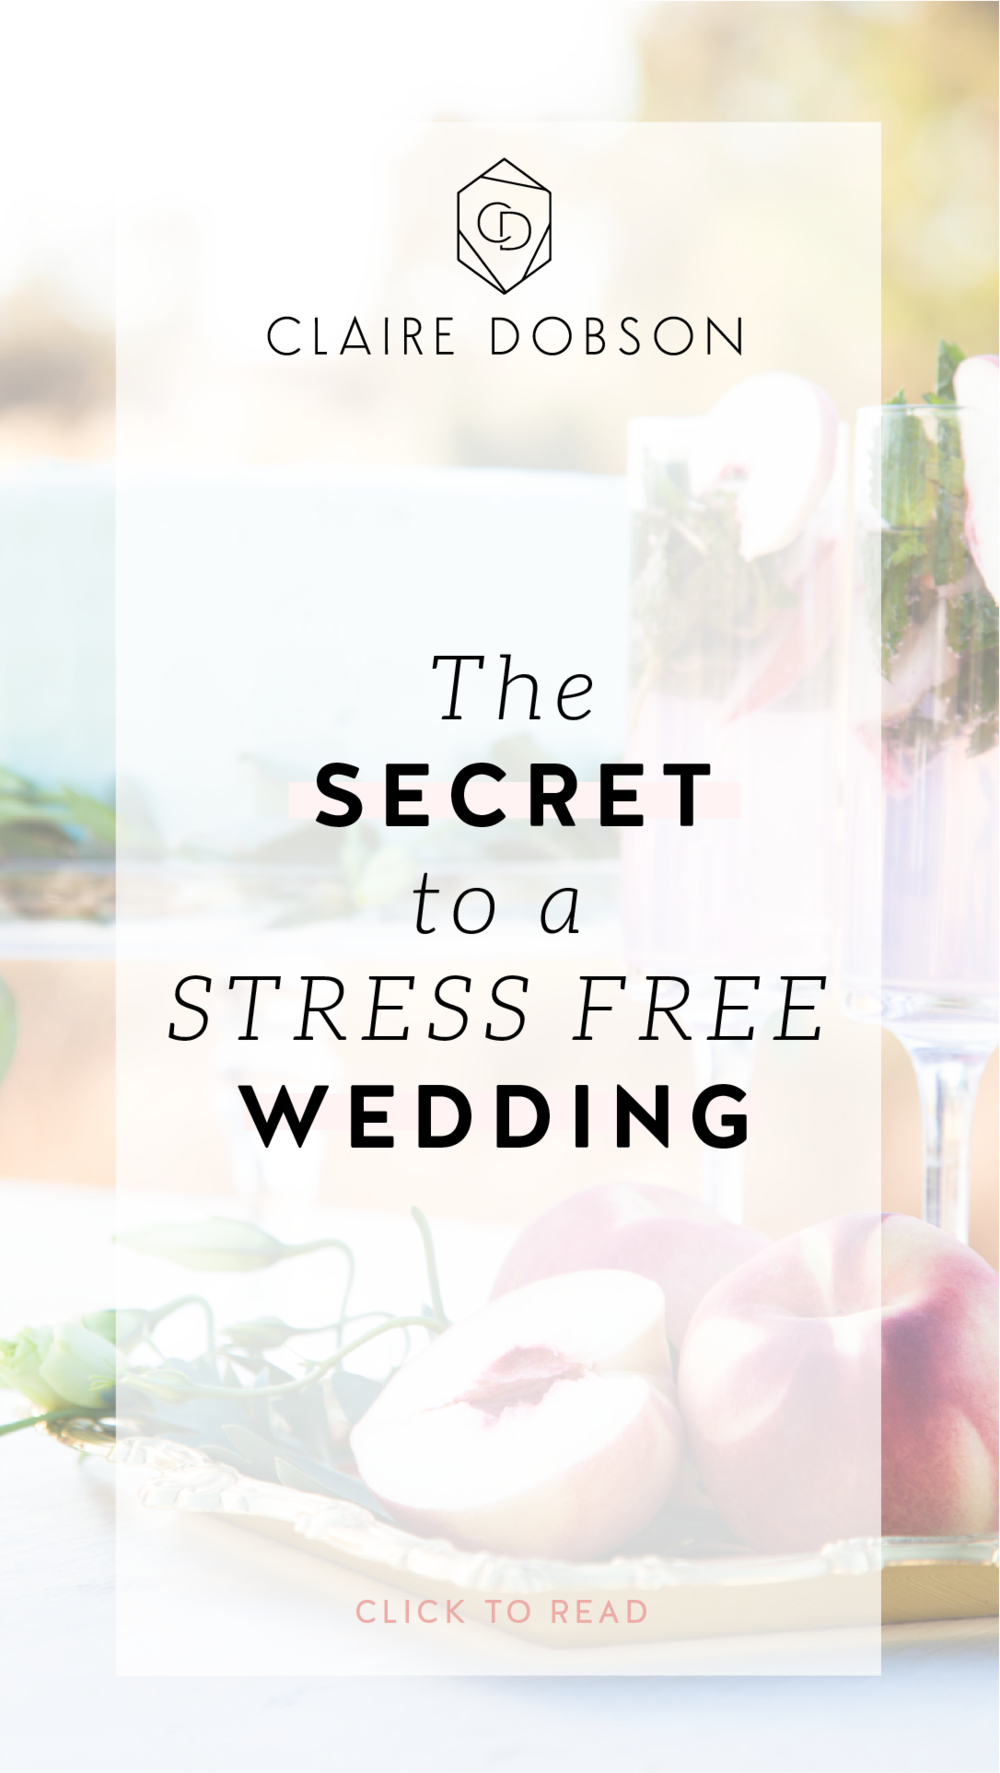 Have you alwaysed dreamed of that story book traditional wedding that everyone talks about? Well guess what you can still have your dream wedding without breaking the bank and staying in your wedding day budget. to learn more wedding planning tips check out this blog post to make all your wedding day dreams come true!